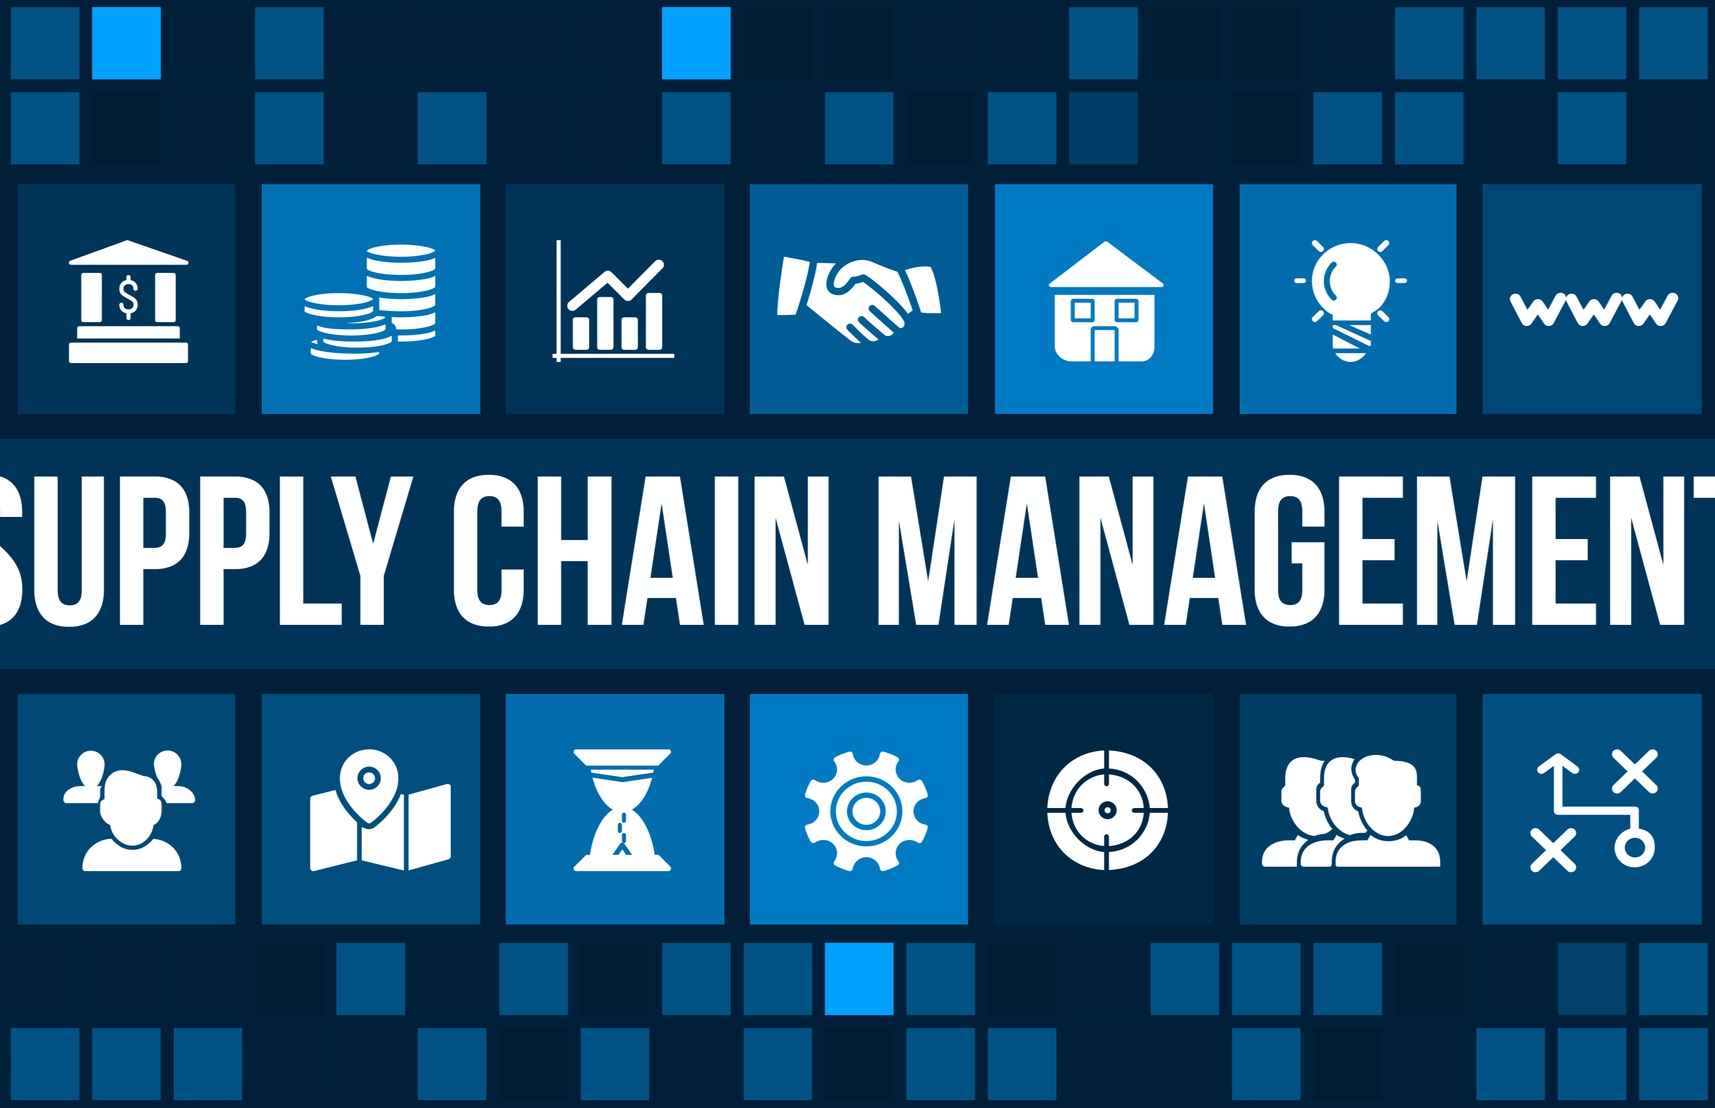 5 Quick Tips About Supply Chain Management